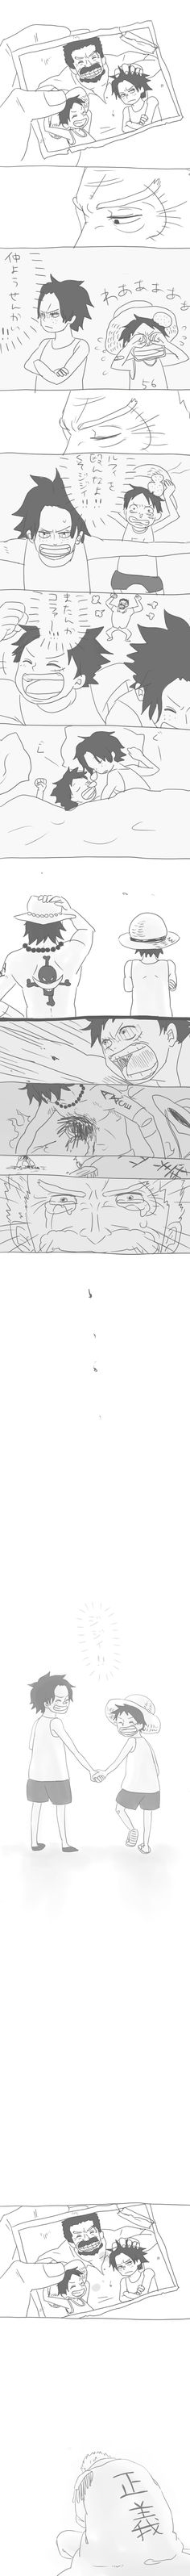 I love Garp. I really want to see Luffy and Garp to have a sappy family moment.